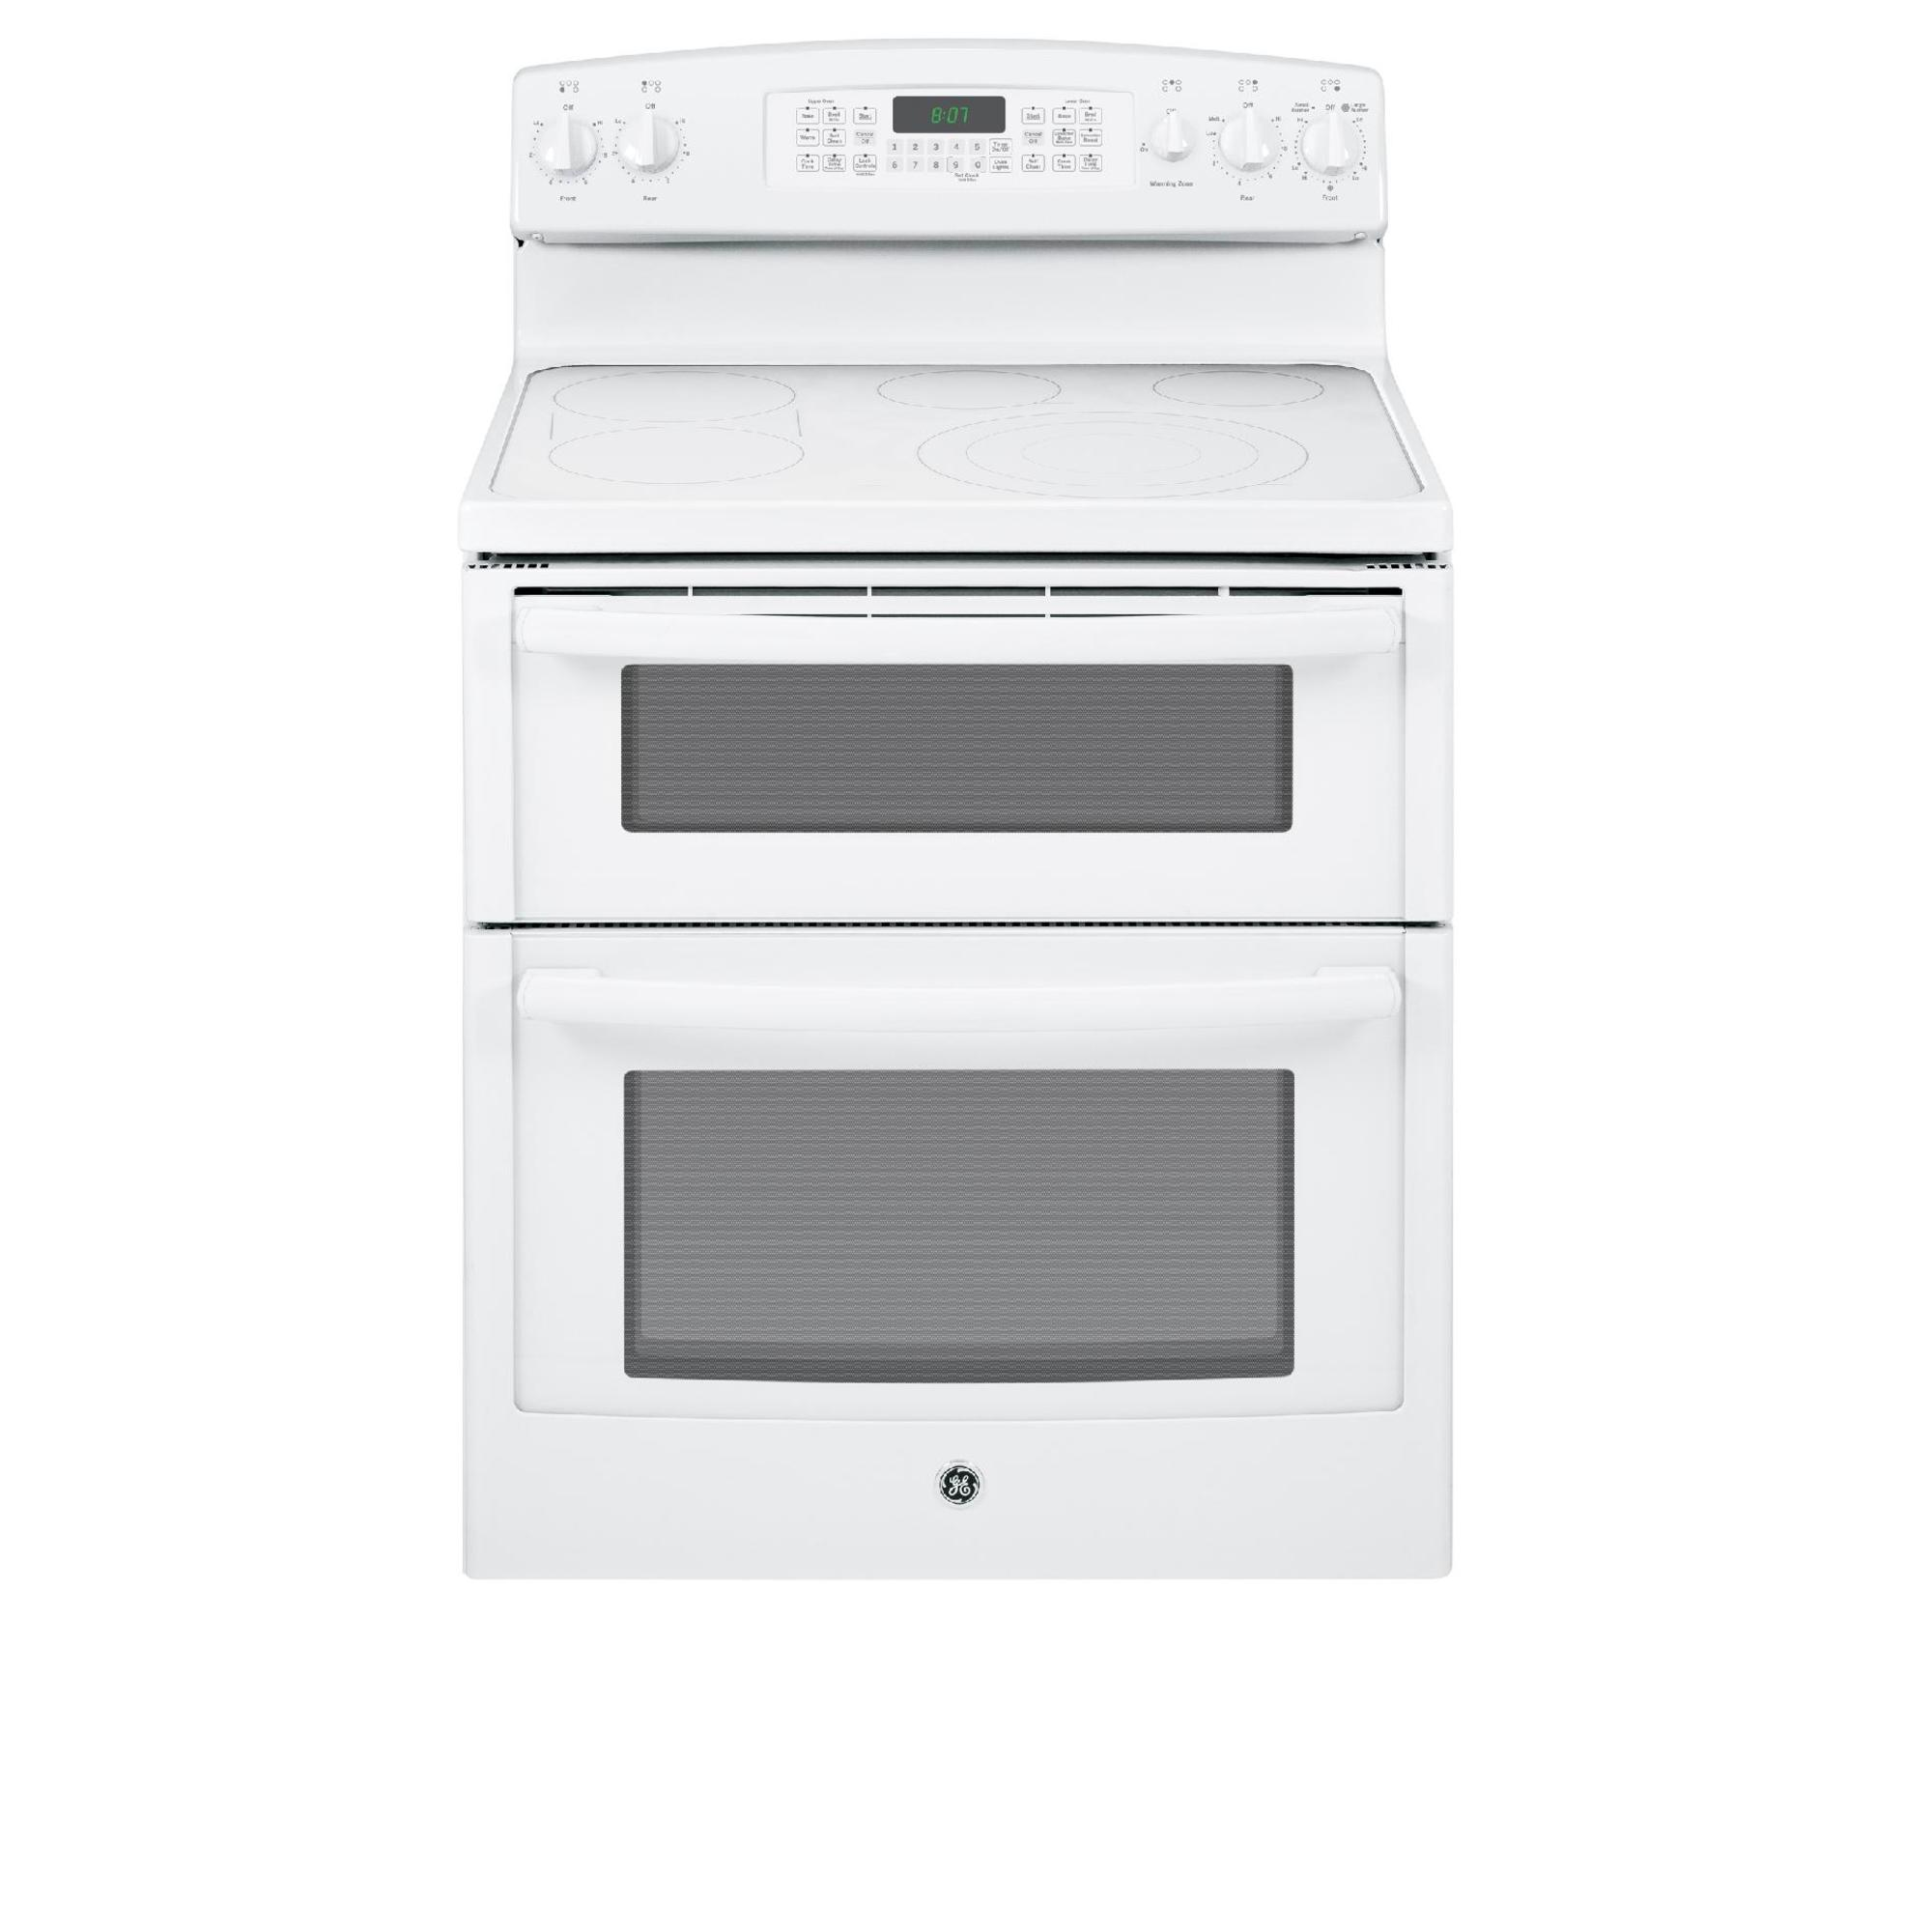 GE Appliances 6.6 cu. ft. Electric Range w/ Convection Oven - White